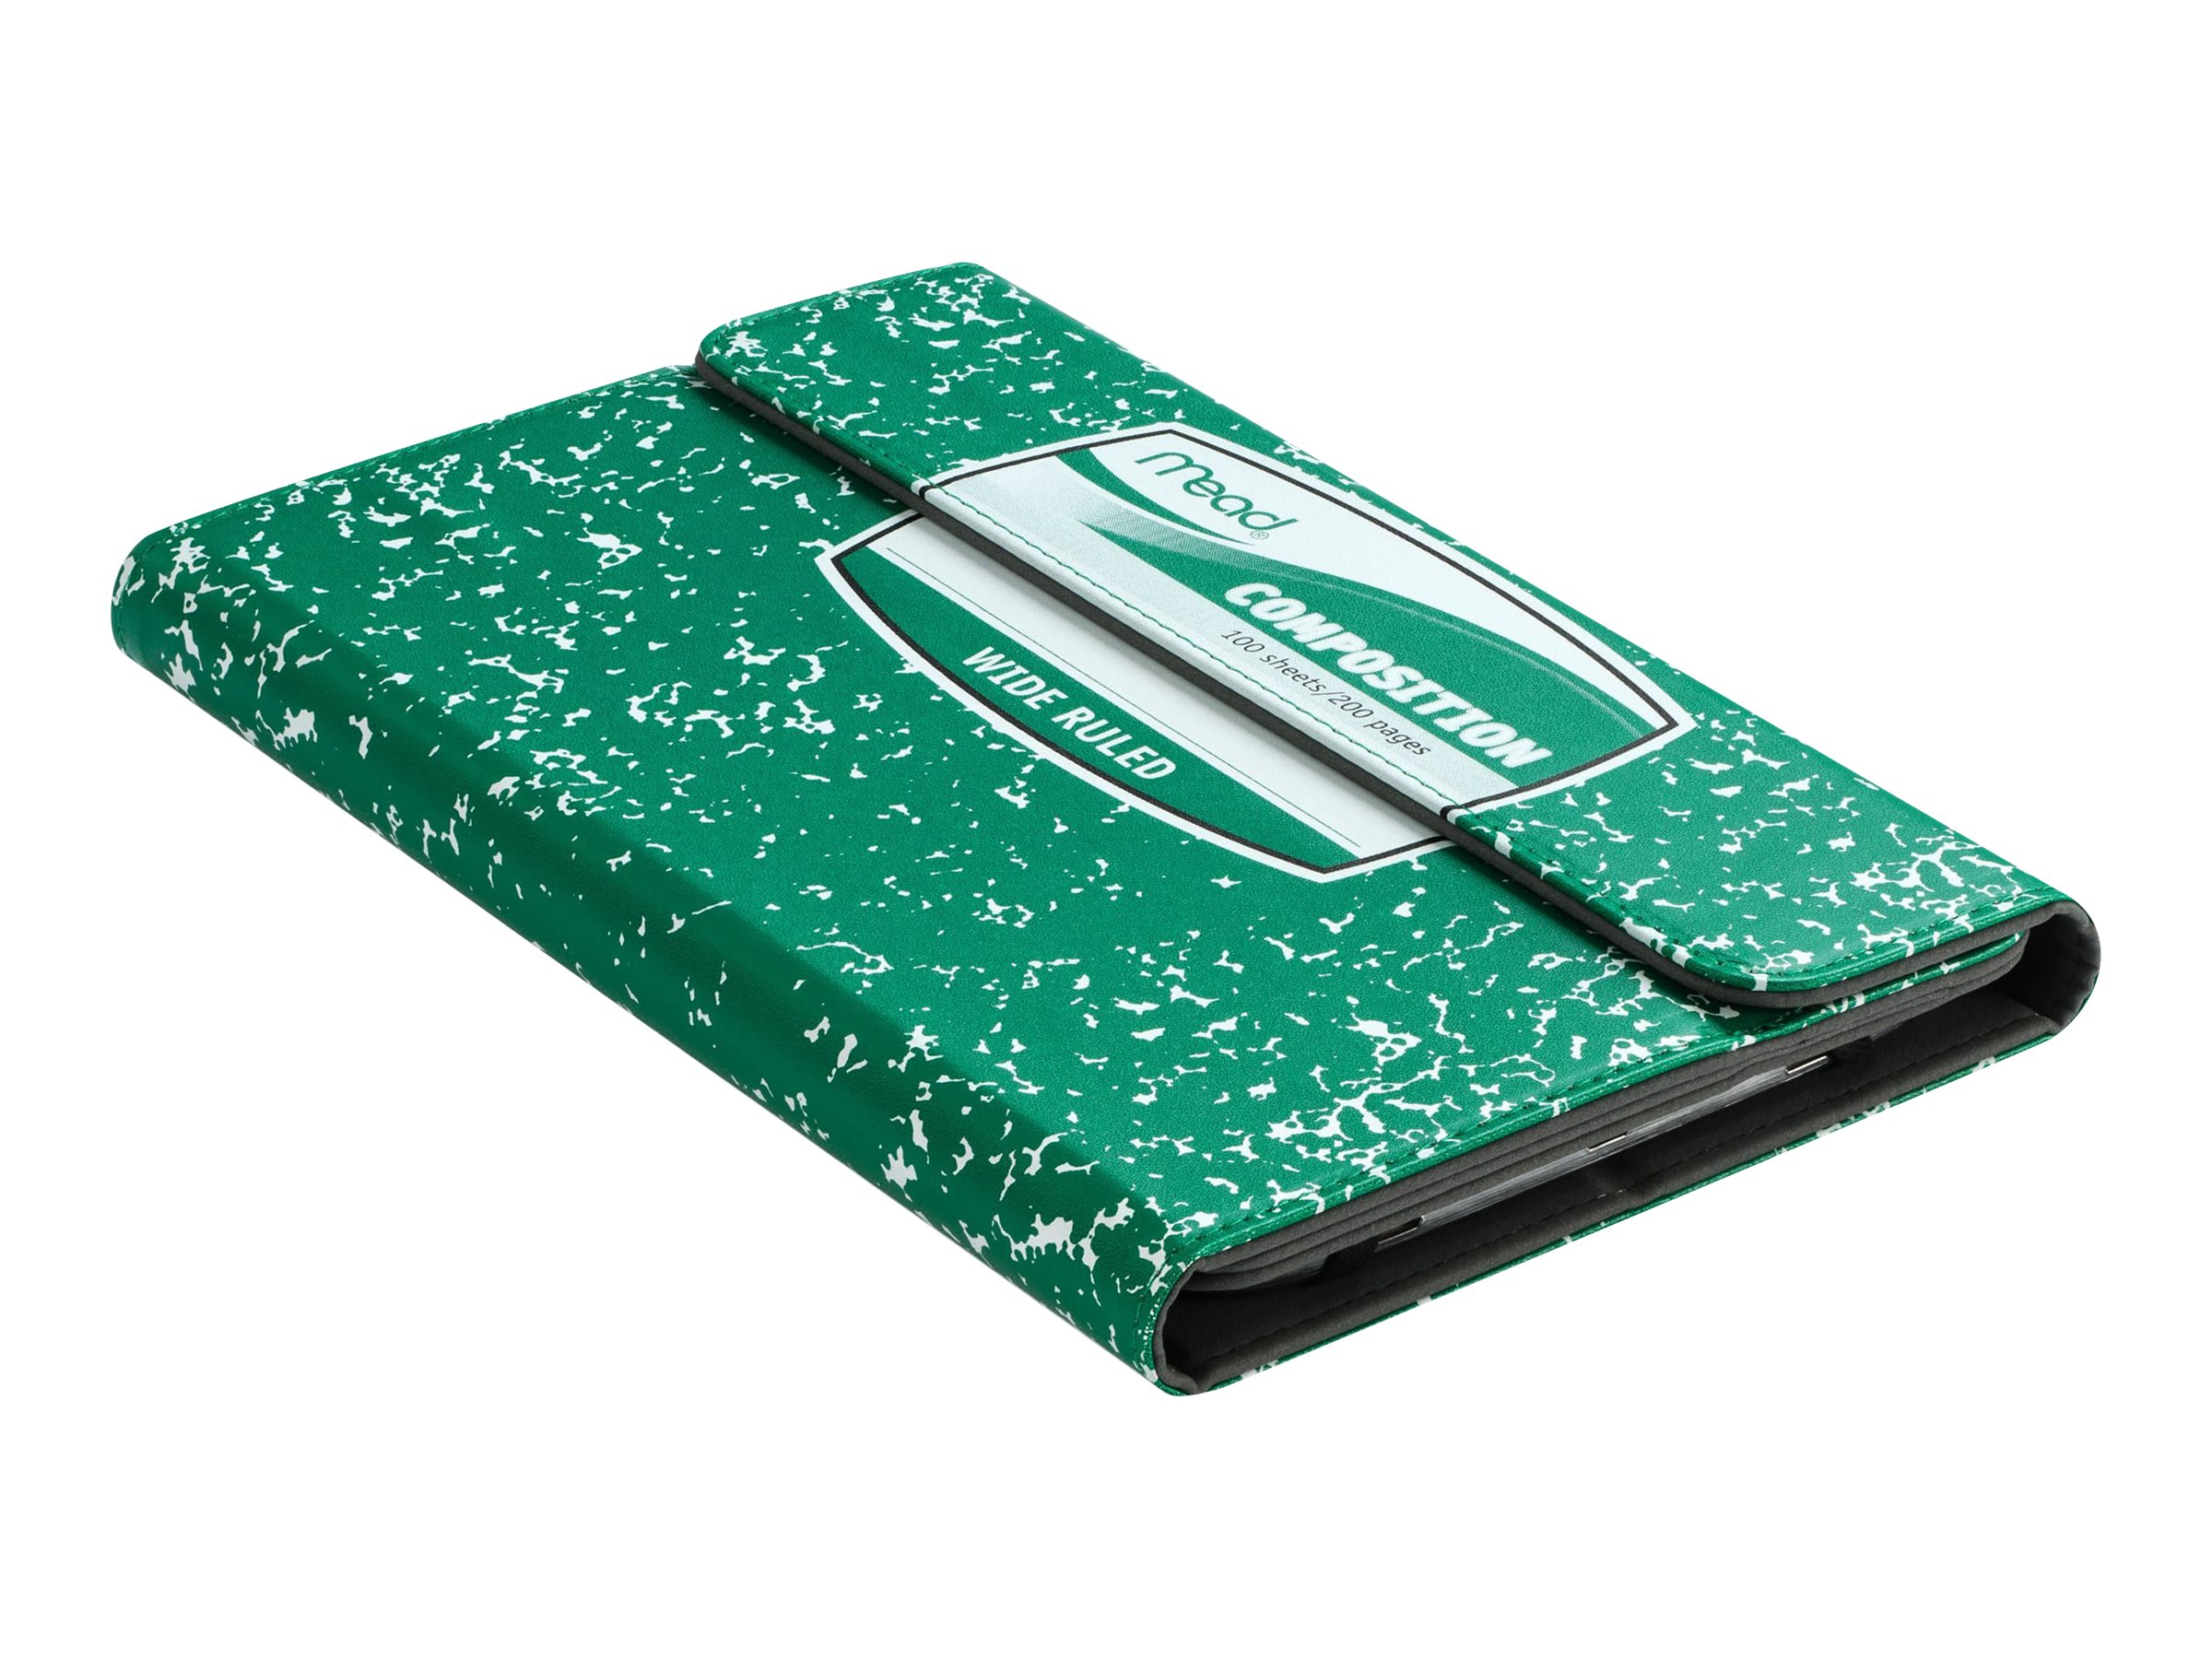 Kensington Composition Book Universal Case for 7 8 Tablets, Green, K97334WW